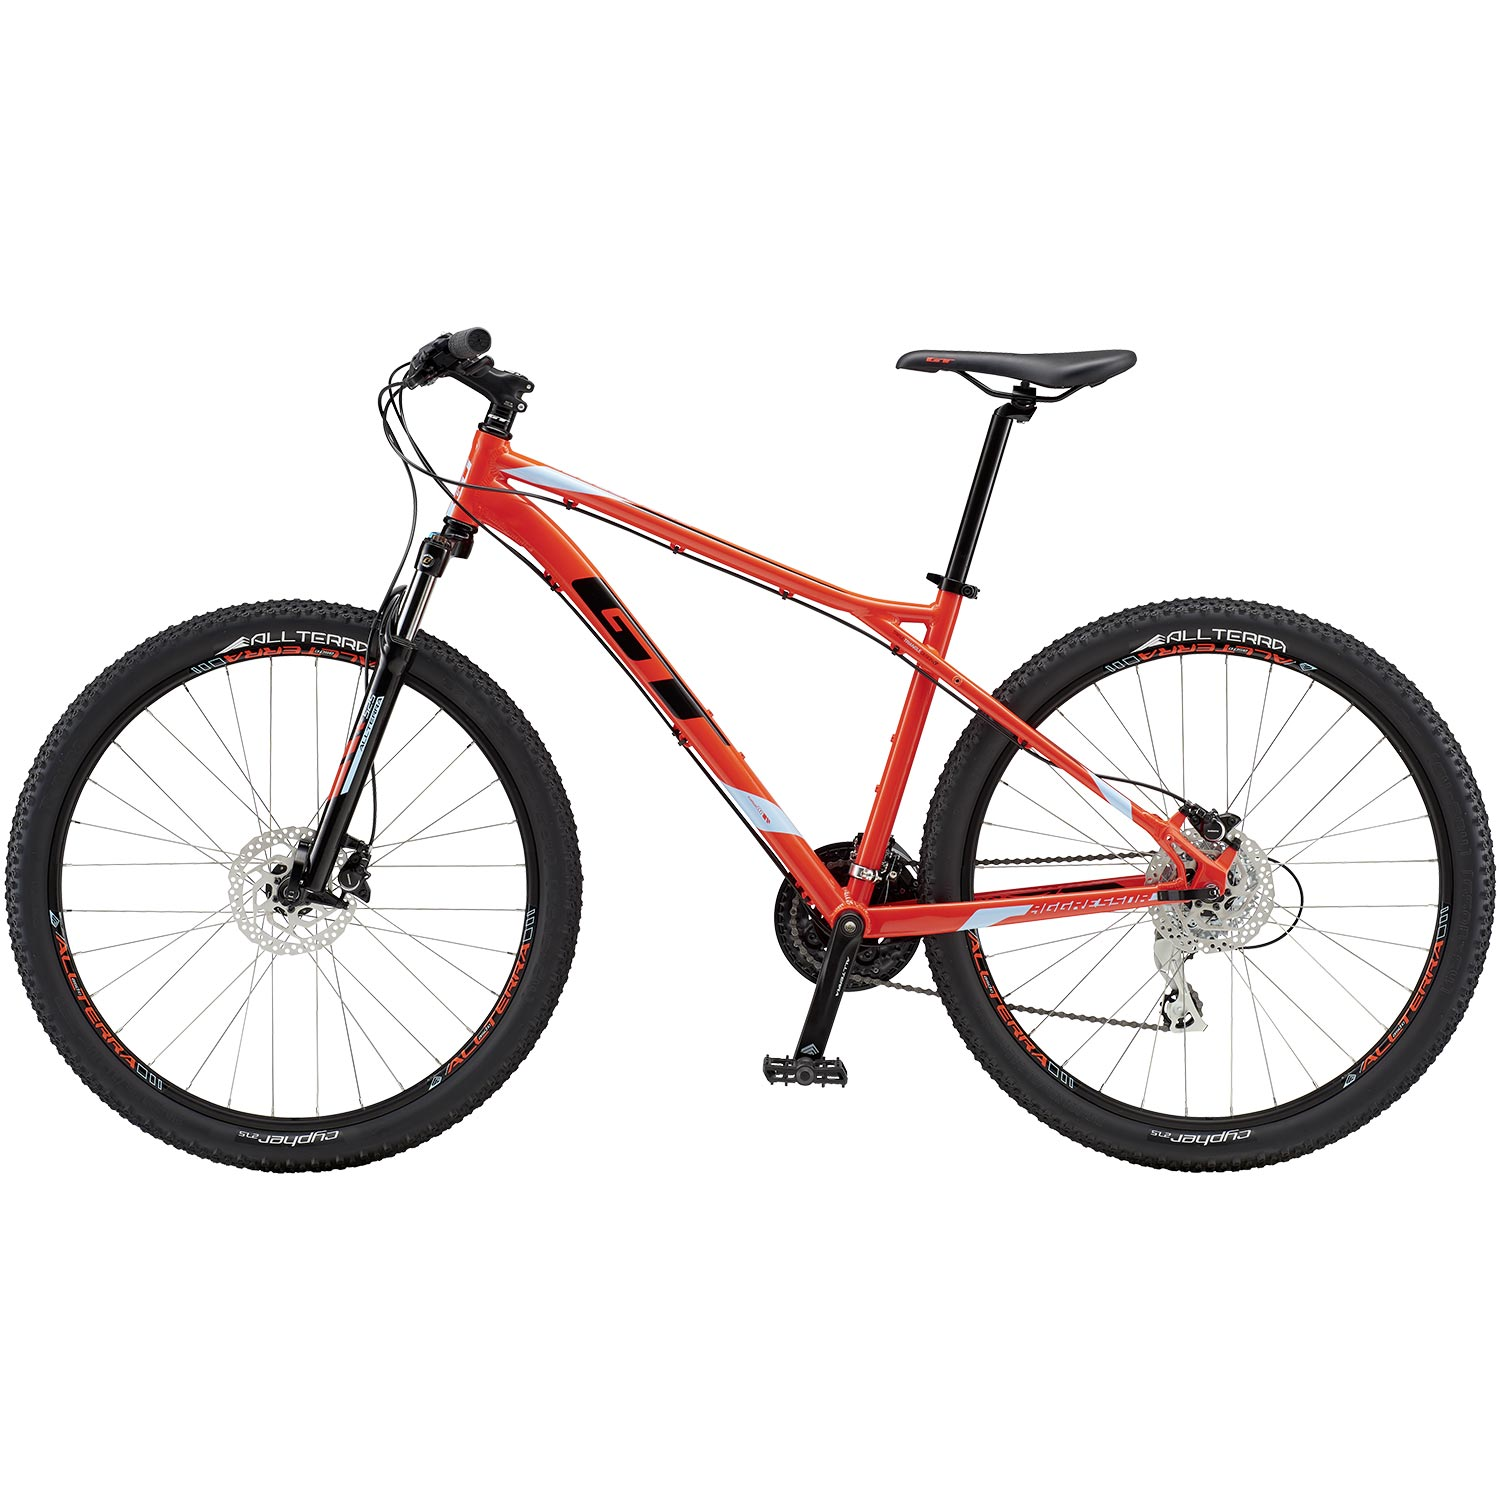 mtb 650b 27 5 zoll hardtail mountainbike fahrrad gt. Black Bedroom Furniture Sets. Home Design Ideas